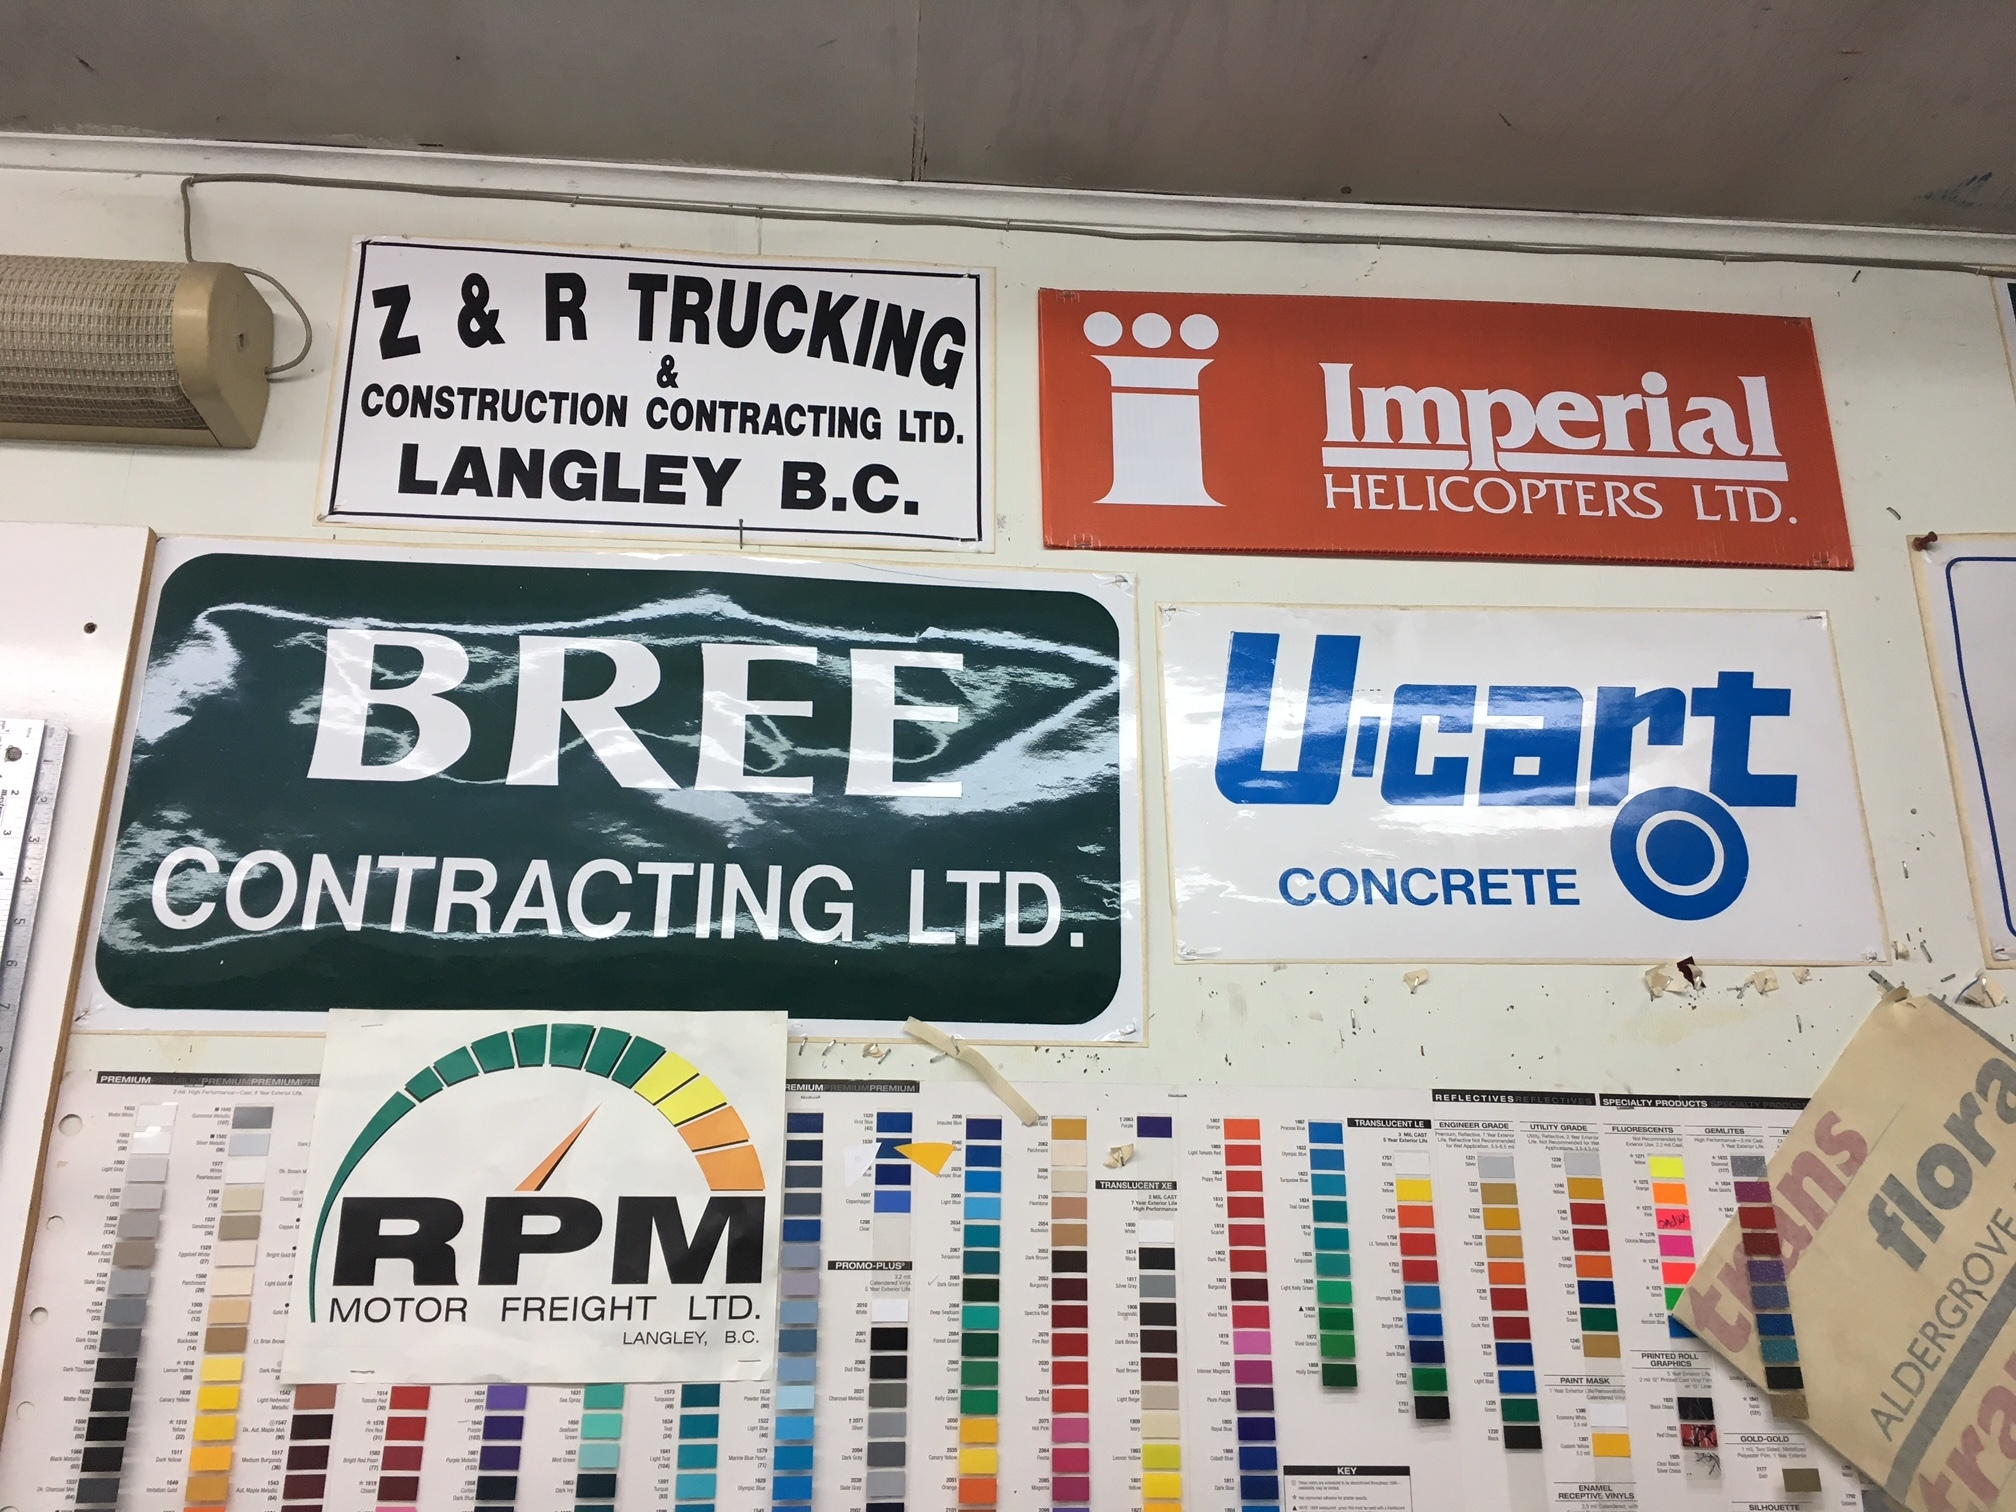 Kitsul Sign & Display Ltd in Langley